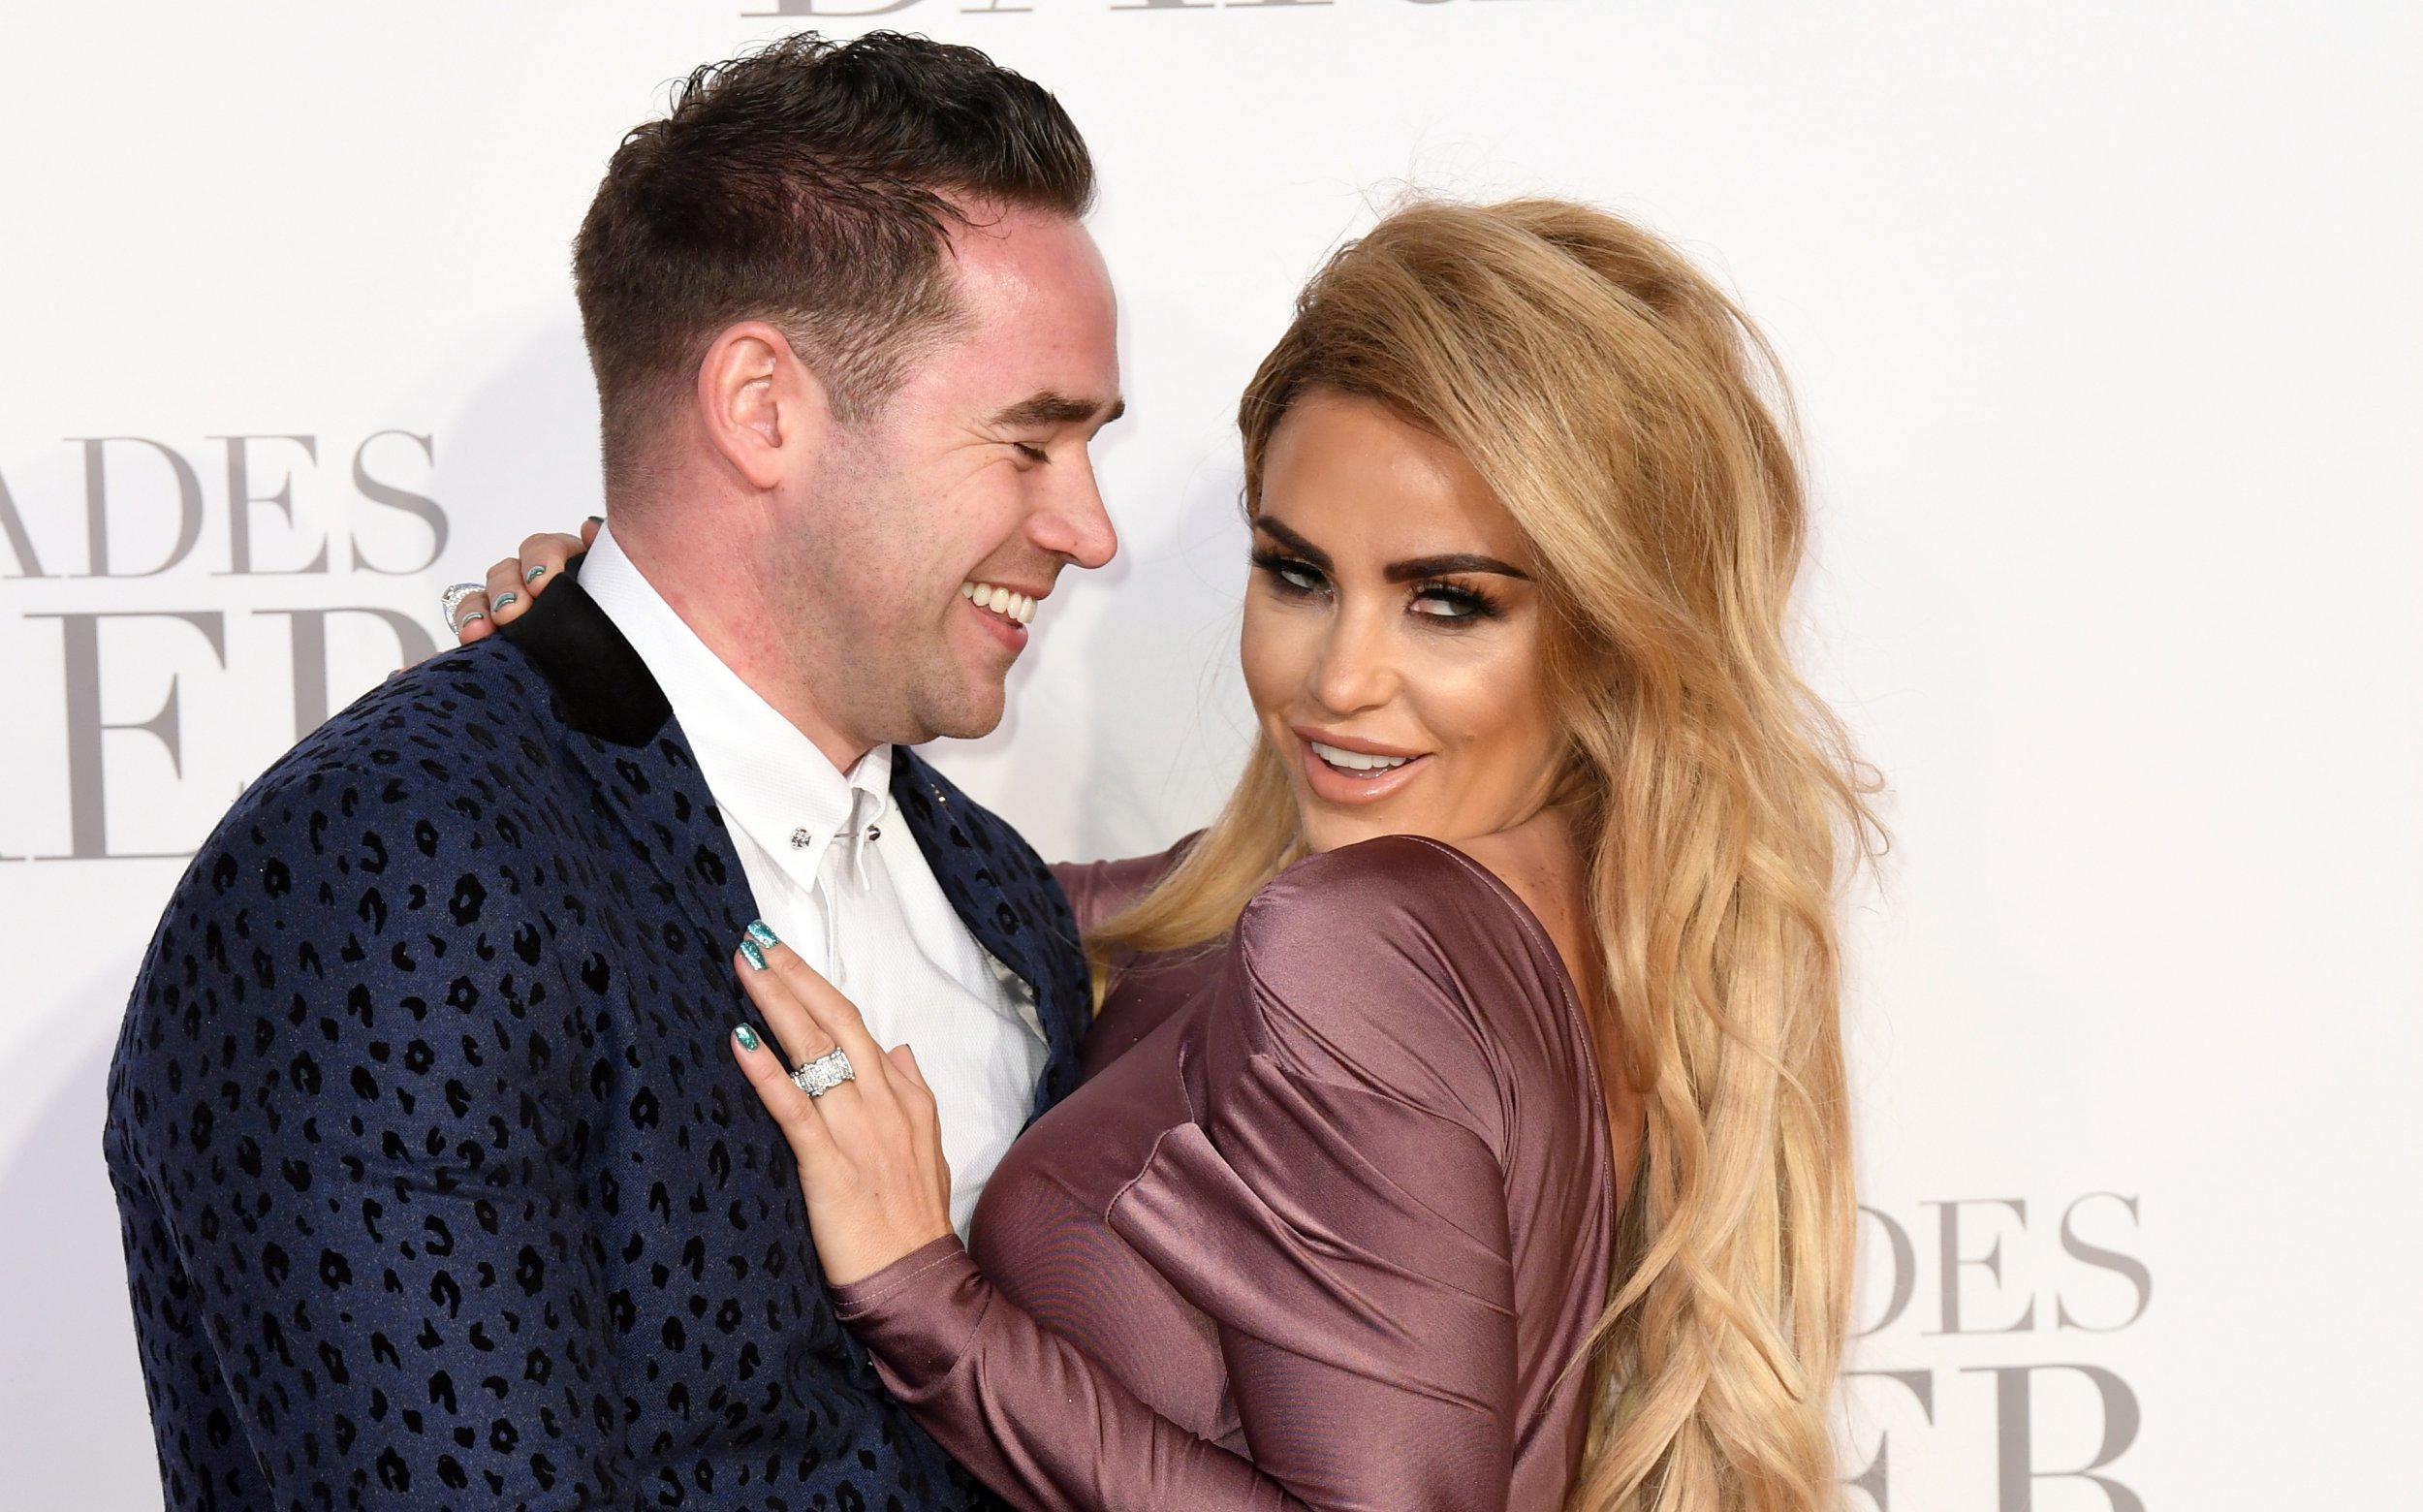 Katie Price and Kieran Hayler arriving for the Fifty Shades Darker European Premiere held at Odeon Leicester Square, London. Picture date: Thursday February 9, 2017. Photo credit should read: Doug Peters/ EMPICS Entertainment